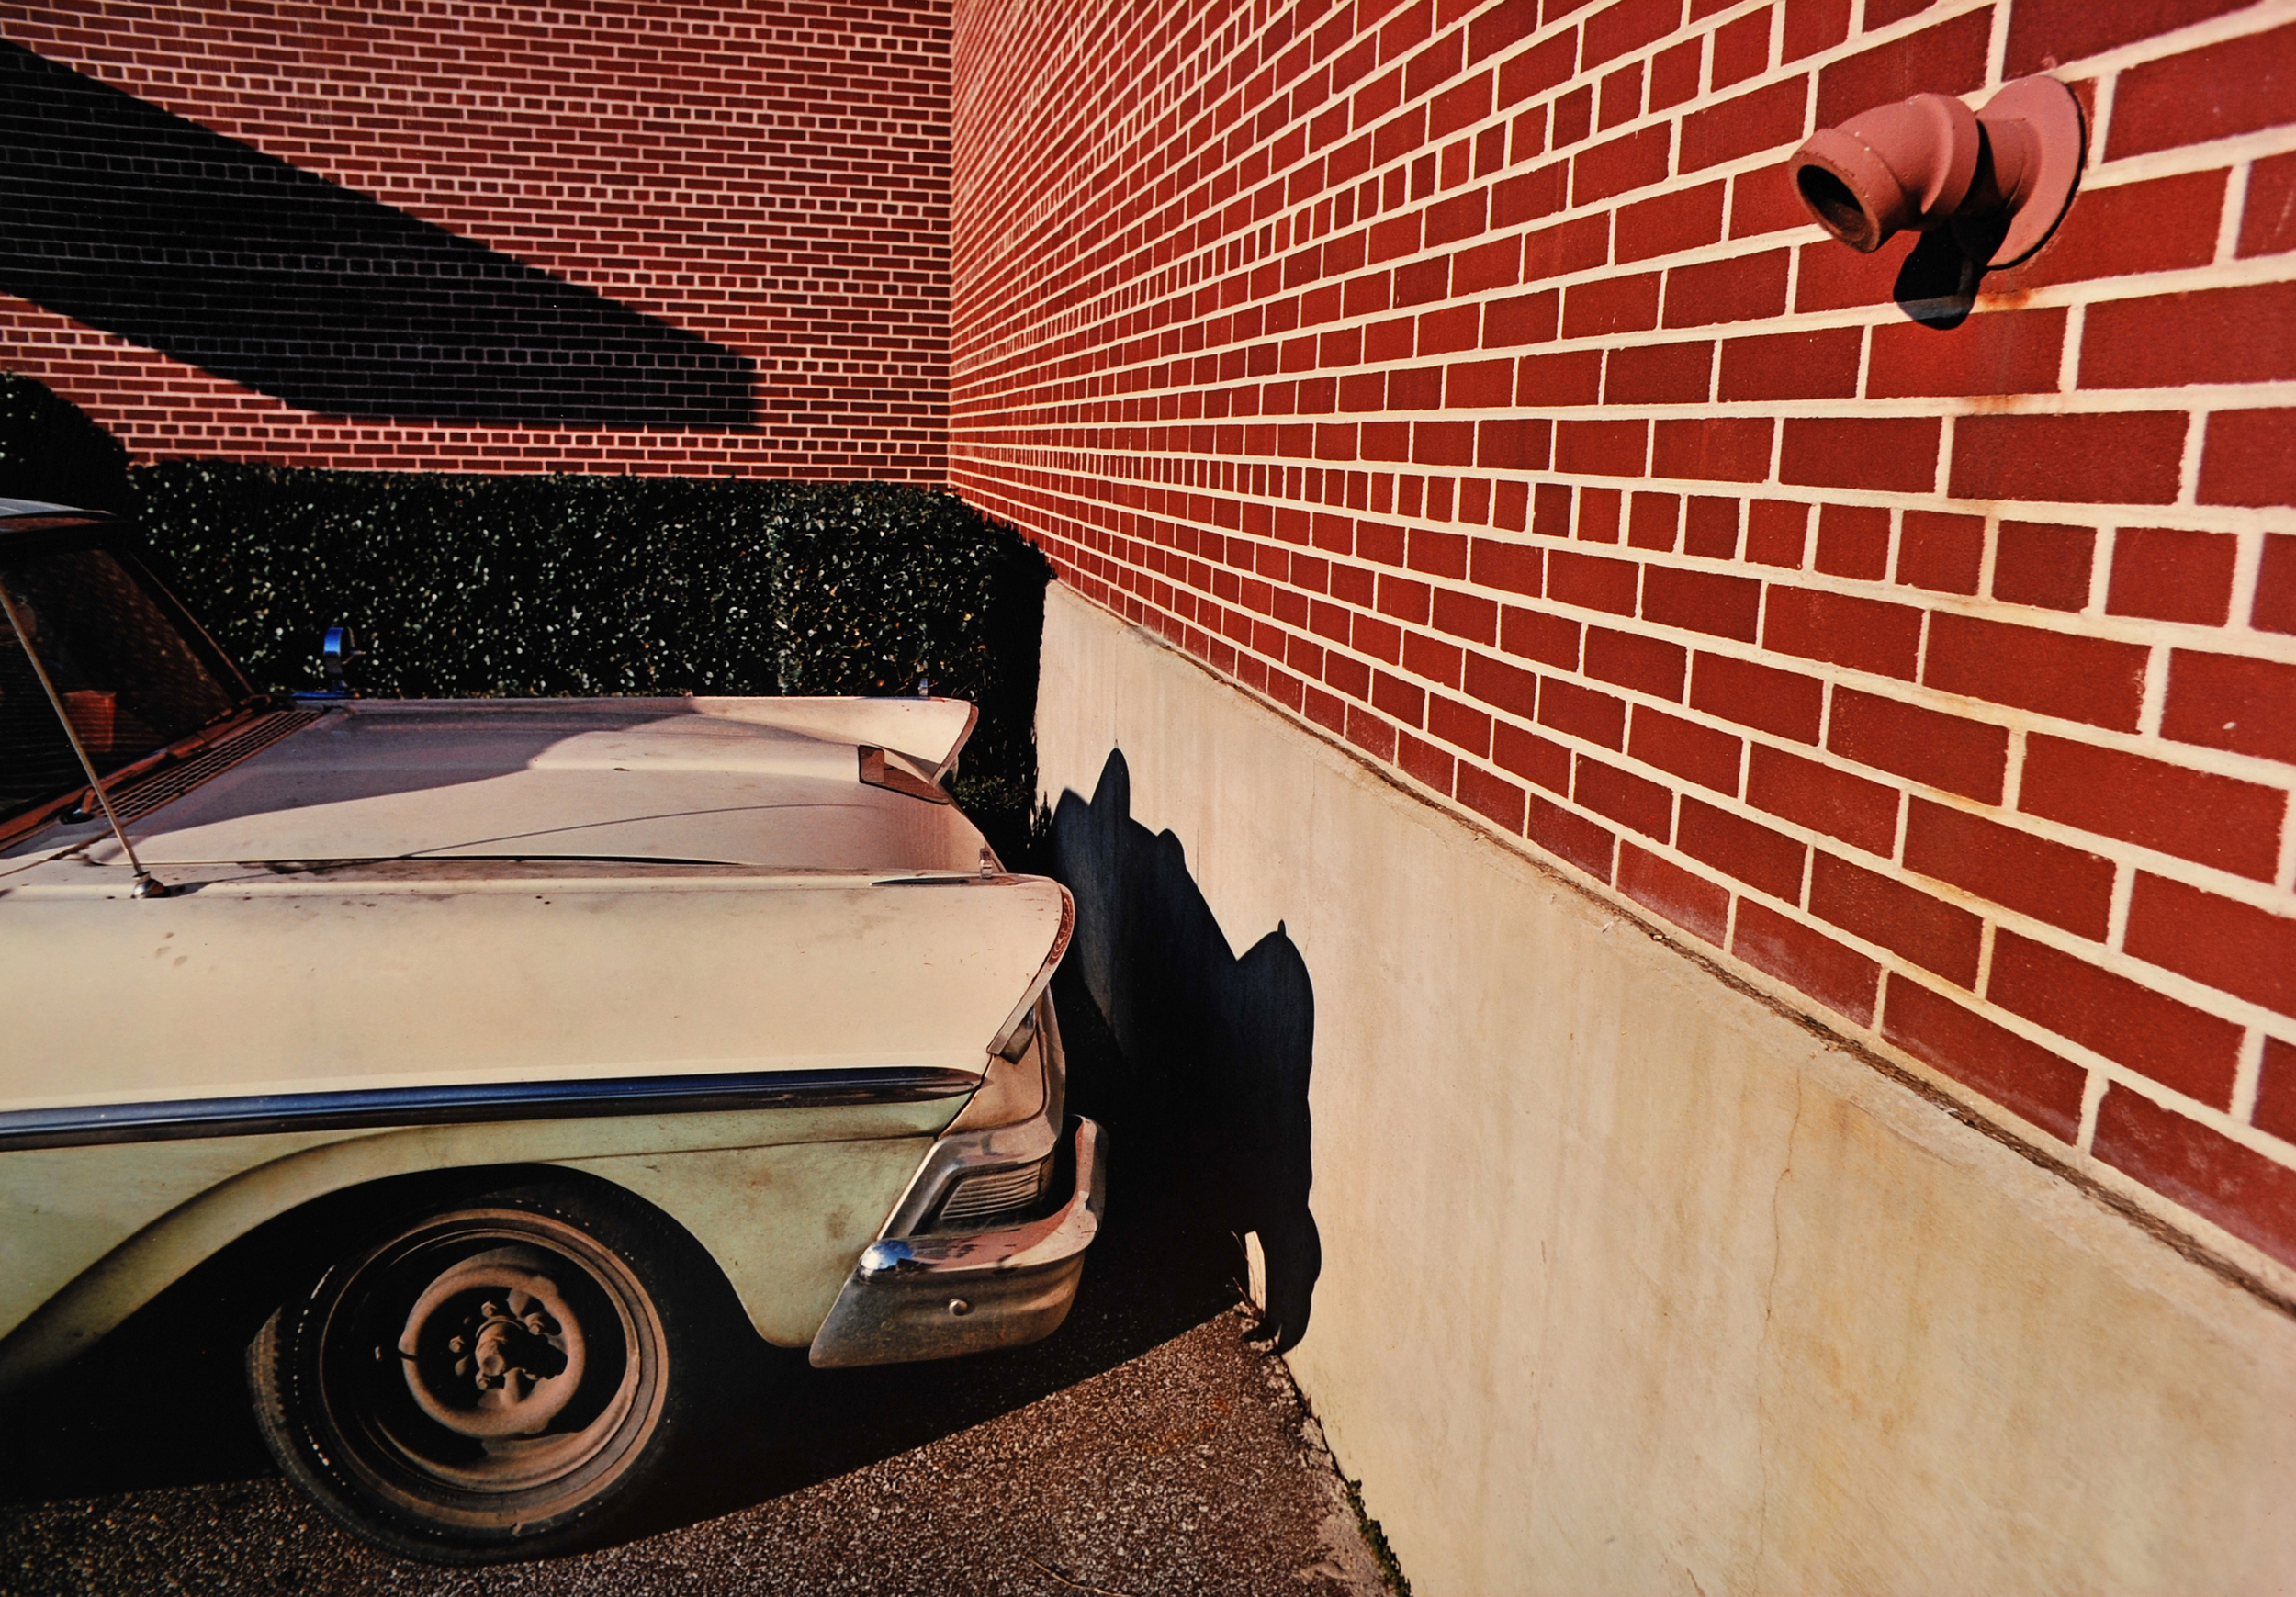 """William Eggleston, Untitled (White Car, Brick Wall),  from """"14 Pictures,"""" 1974.  http://www.rosegallery.net/eggleston/exhibitions/williameggleston/"""